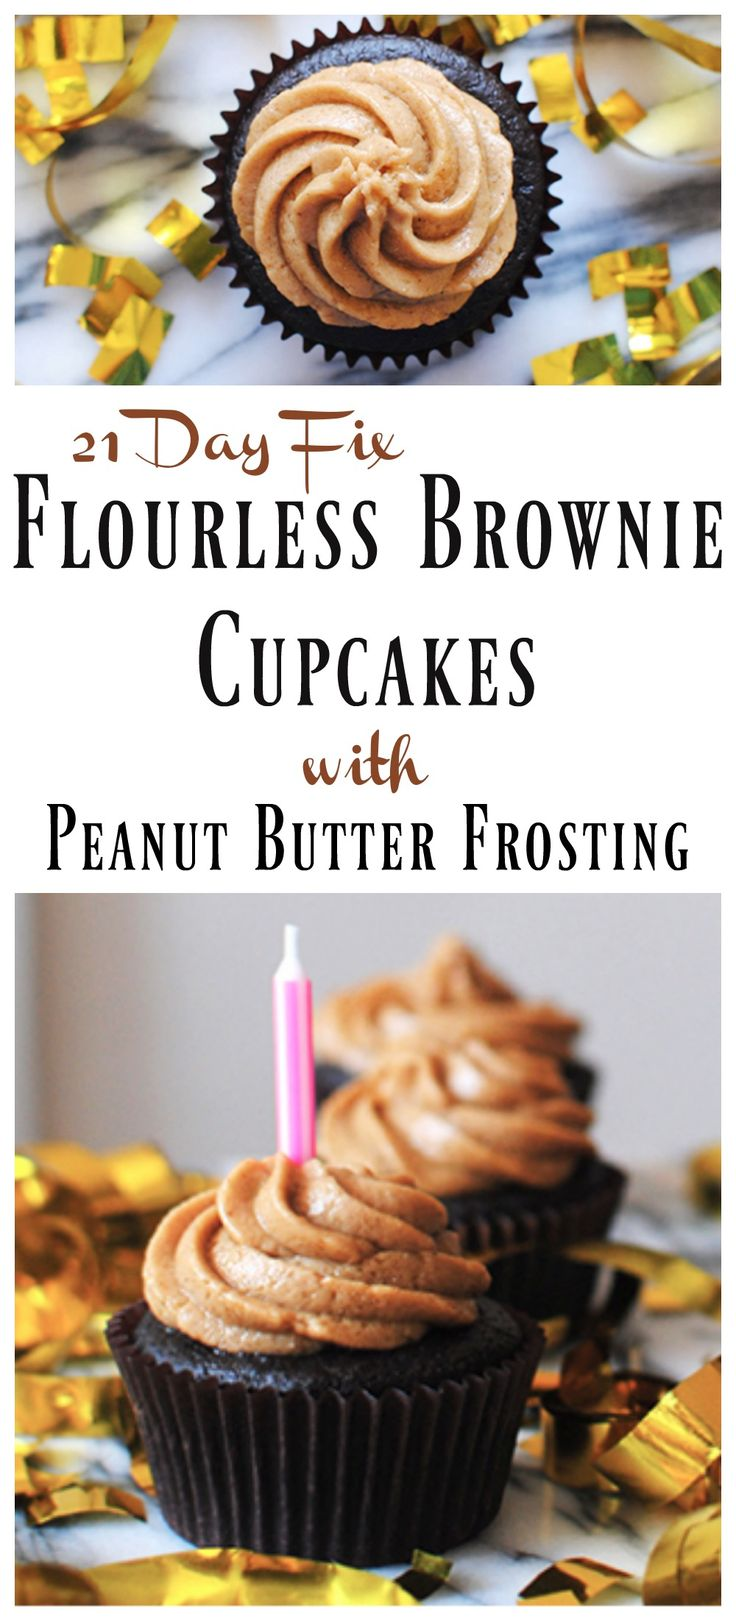 ... Cupcakes - Flourless Brownie Cupcakes with Peanut Butter Frosting